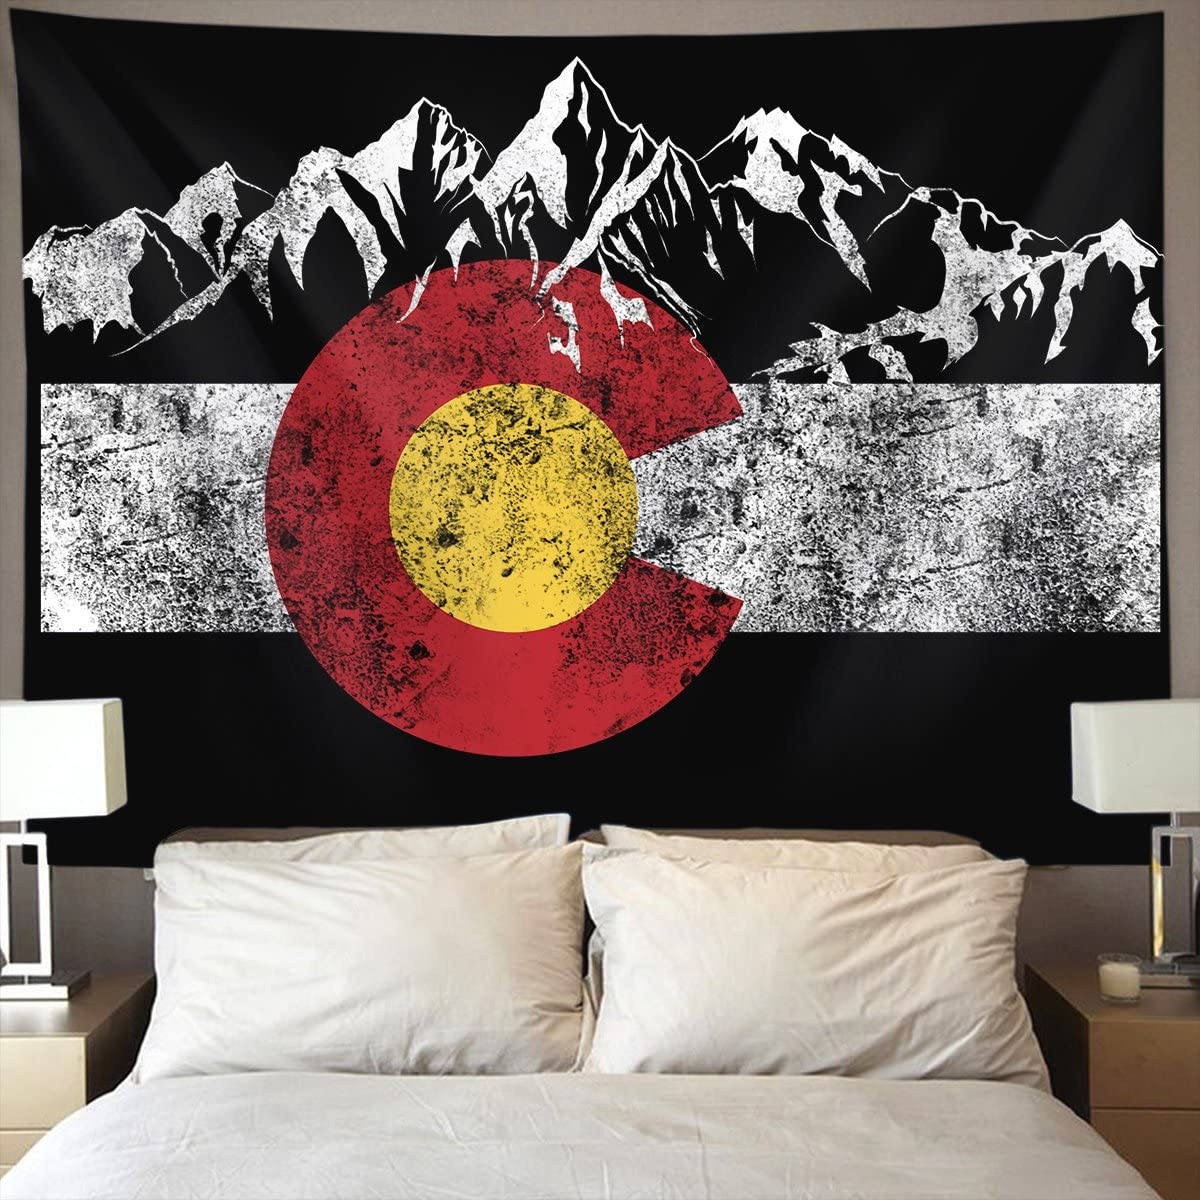 Colorado Flag Moutain Wall Tapestry Hippie Art Tapestry Wall Hanging Home Decor Extra Large tablecloths 60×90 inches for Bedroom Living Room Dorm Room